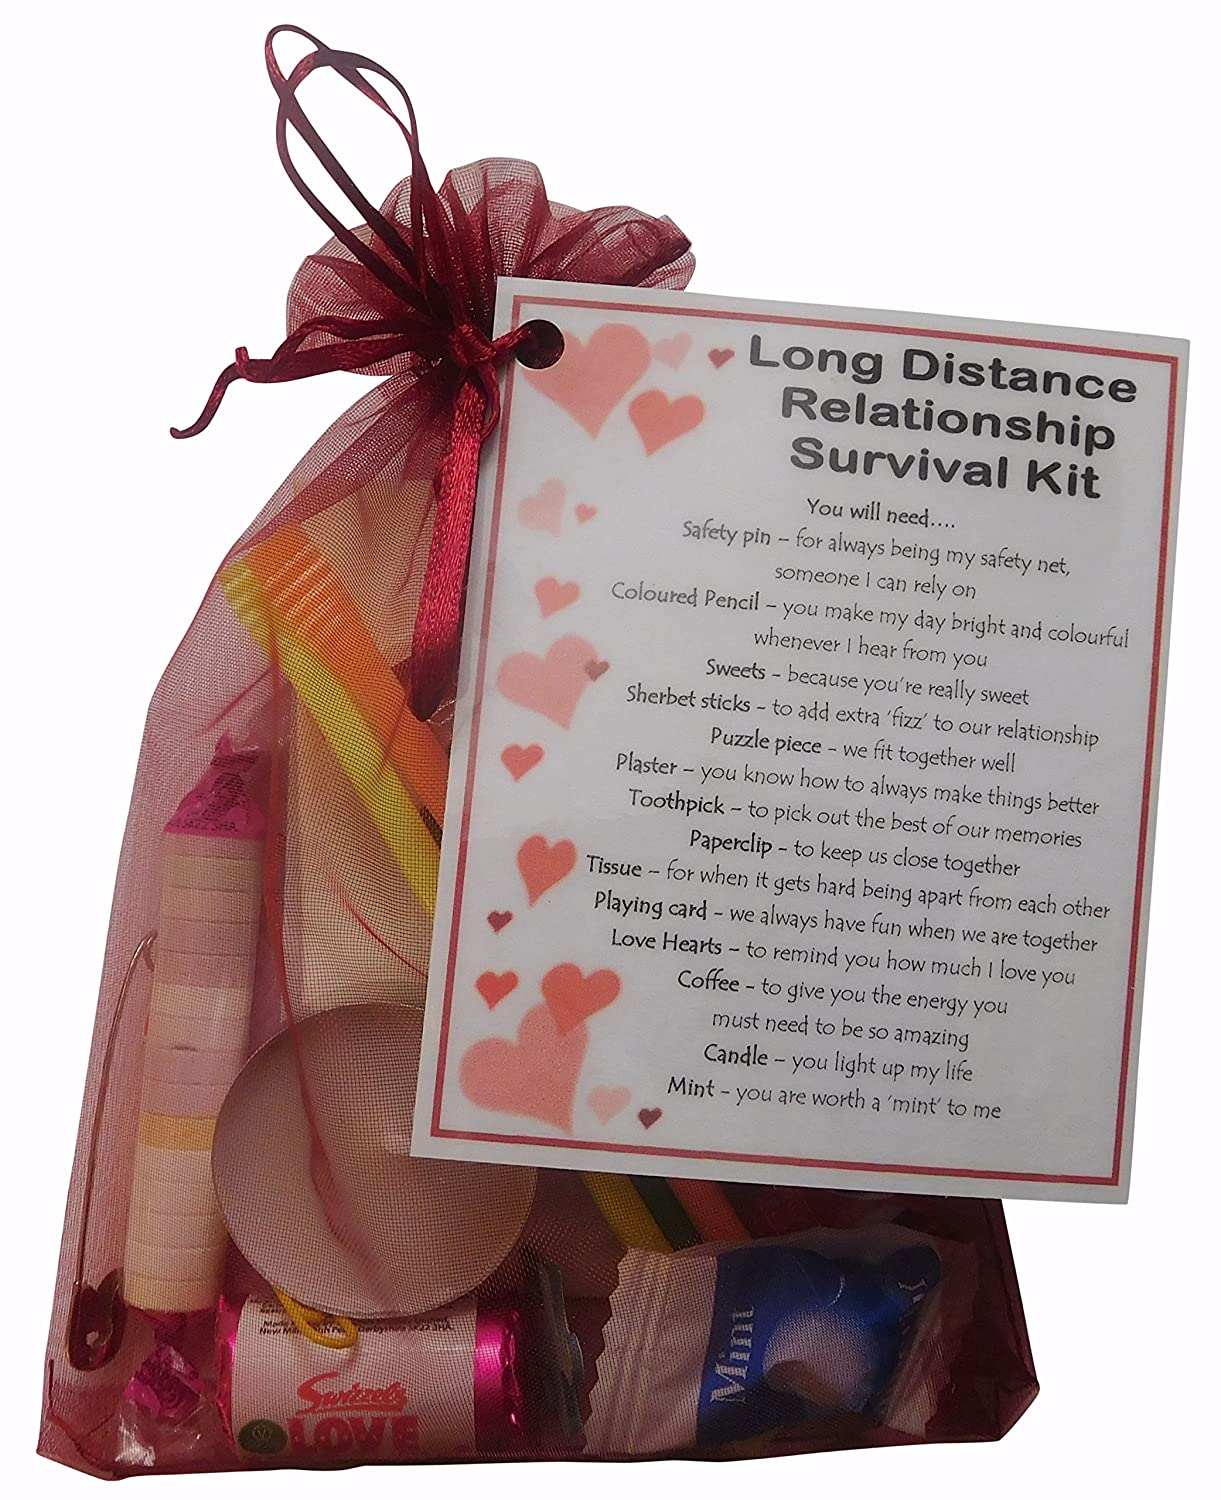 SMILE GIFTS UK Long Distance Relationship Survival Kit Gift Great Novelty Present For Girlfriend Or Boyfriend Valentines Birthday Christmas